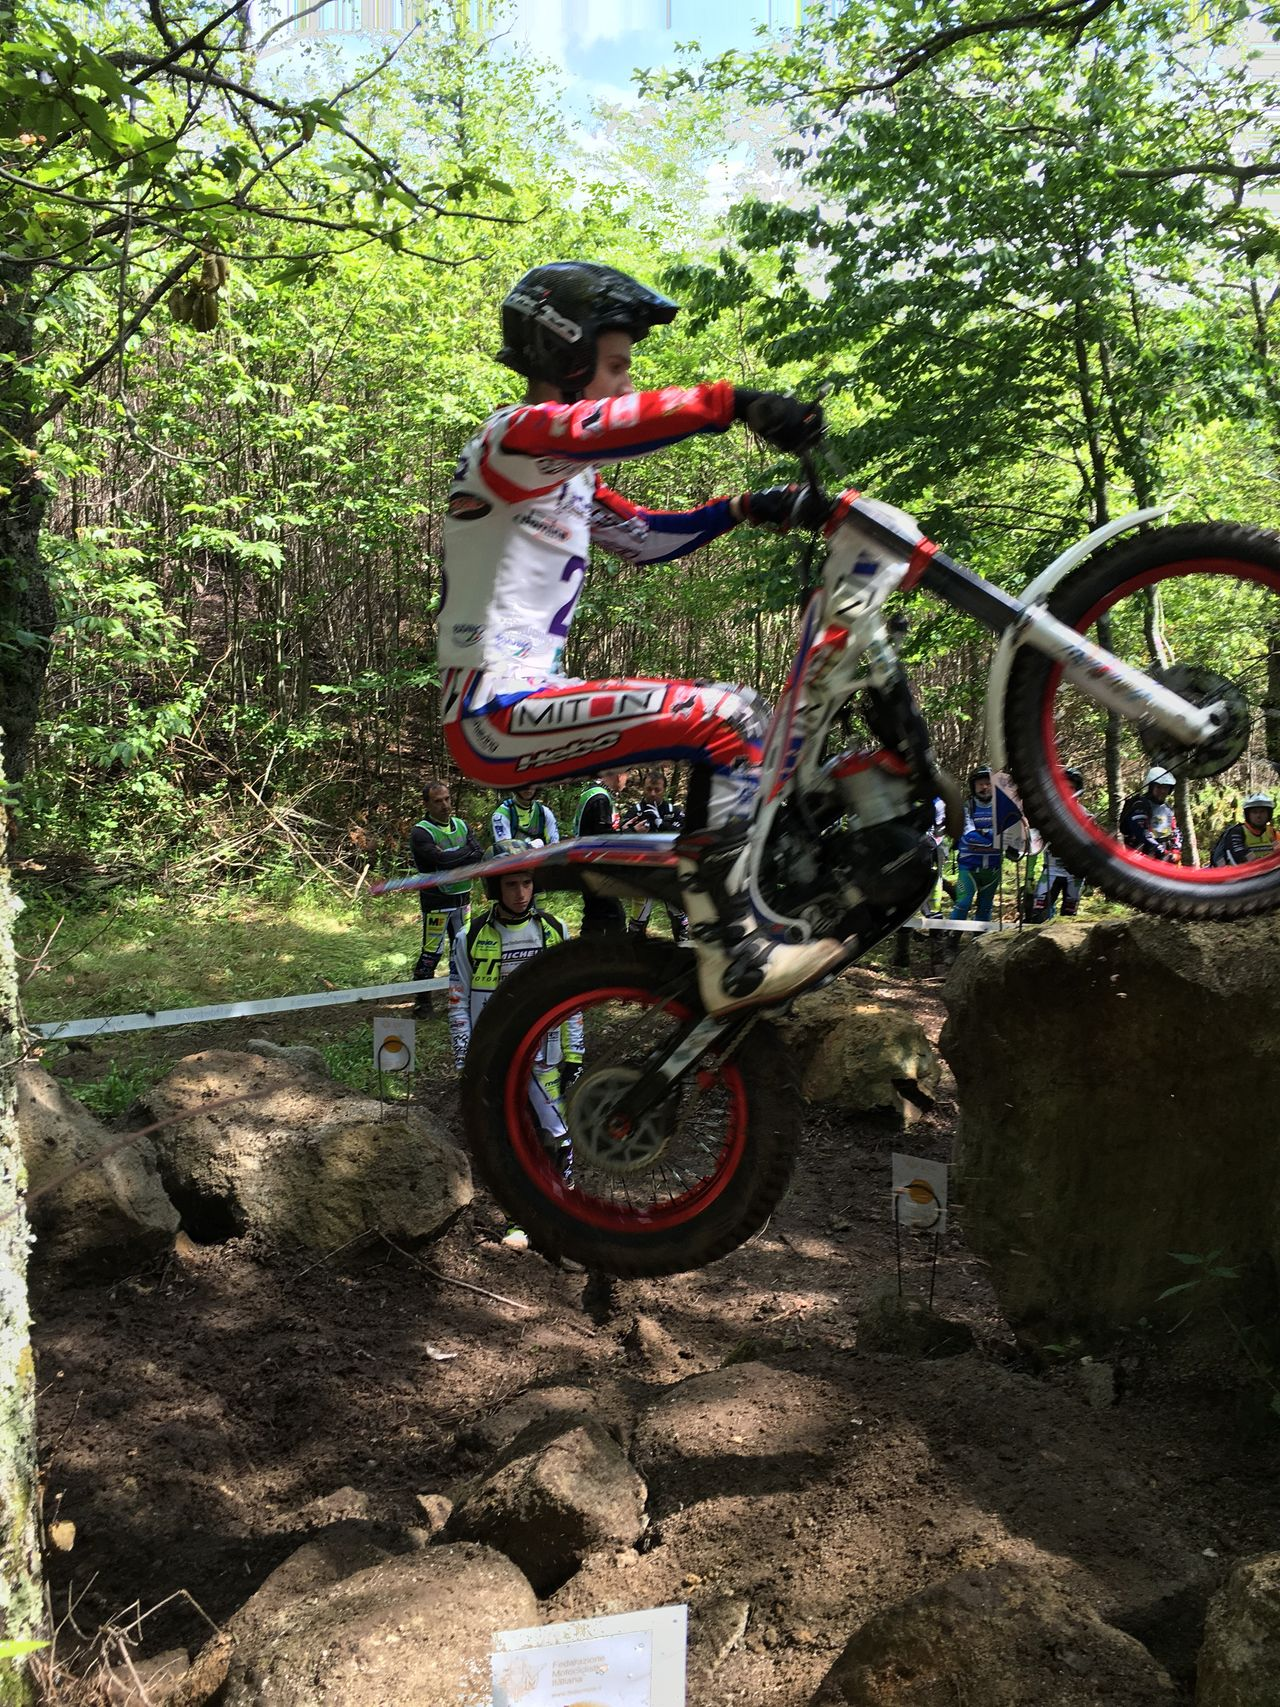 Campionato Italiano Trial Bikes Outdoor Nofilter Bestleisureactivity Loveforbikes Balance. Concentration Greatpeople